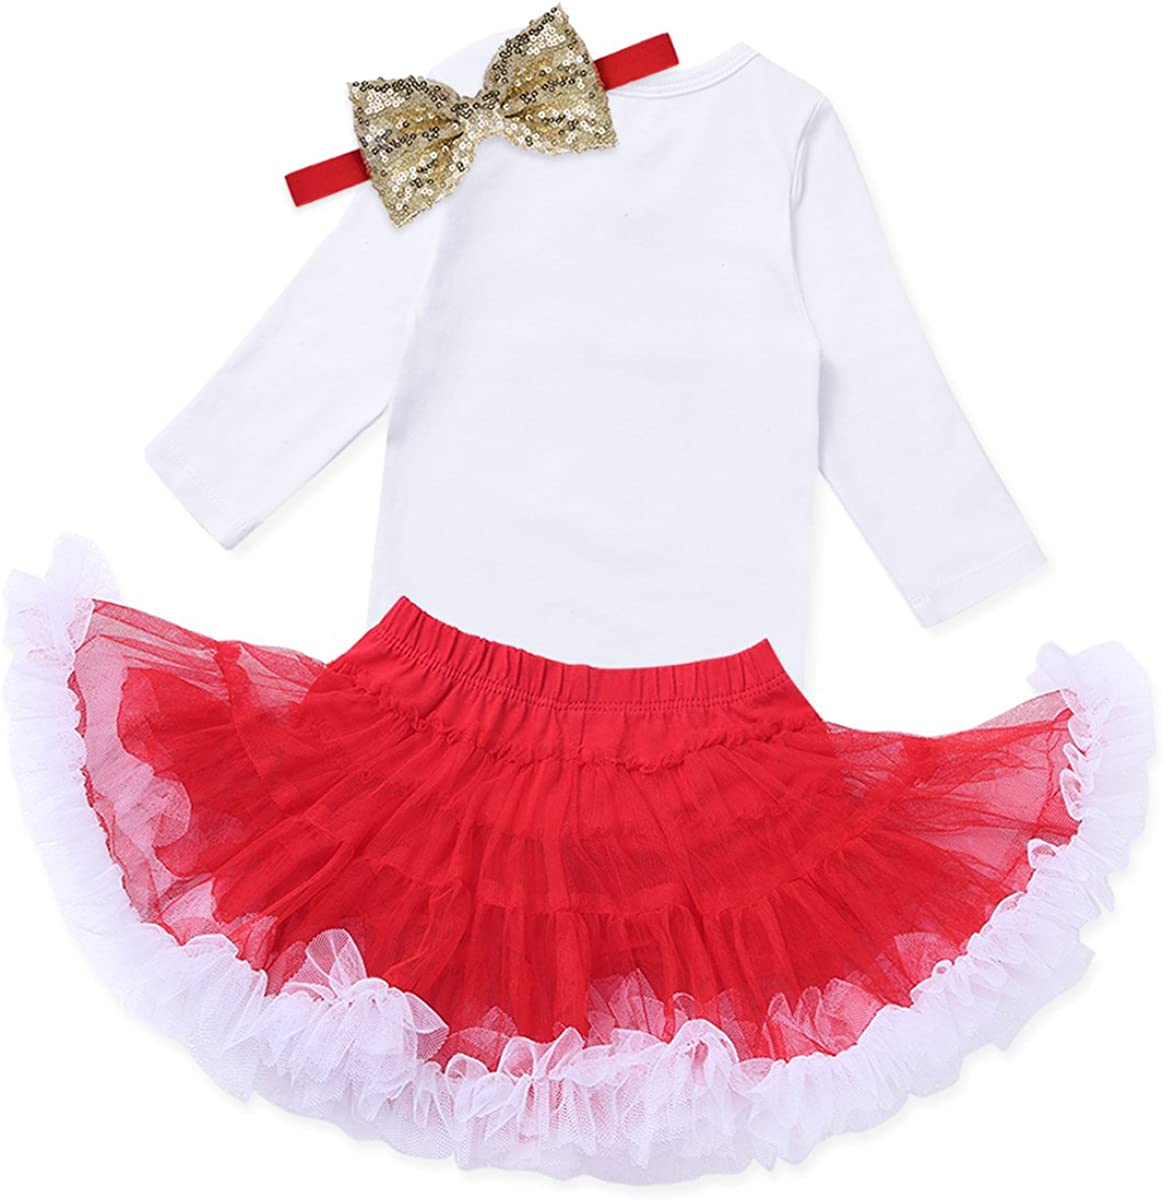 1st Birthday Oufit Romper Bodysuit Top with Headband Tutu Skirt Set FEESHOW Newborn Baby Girls 1//2 Half